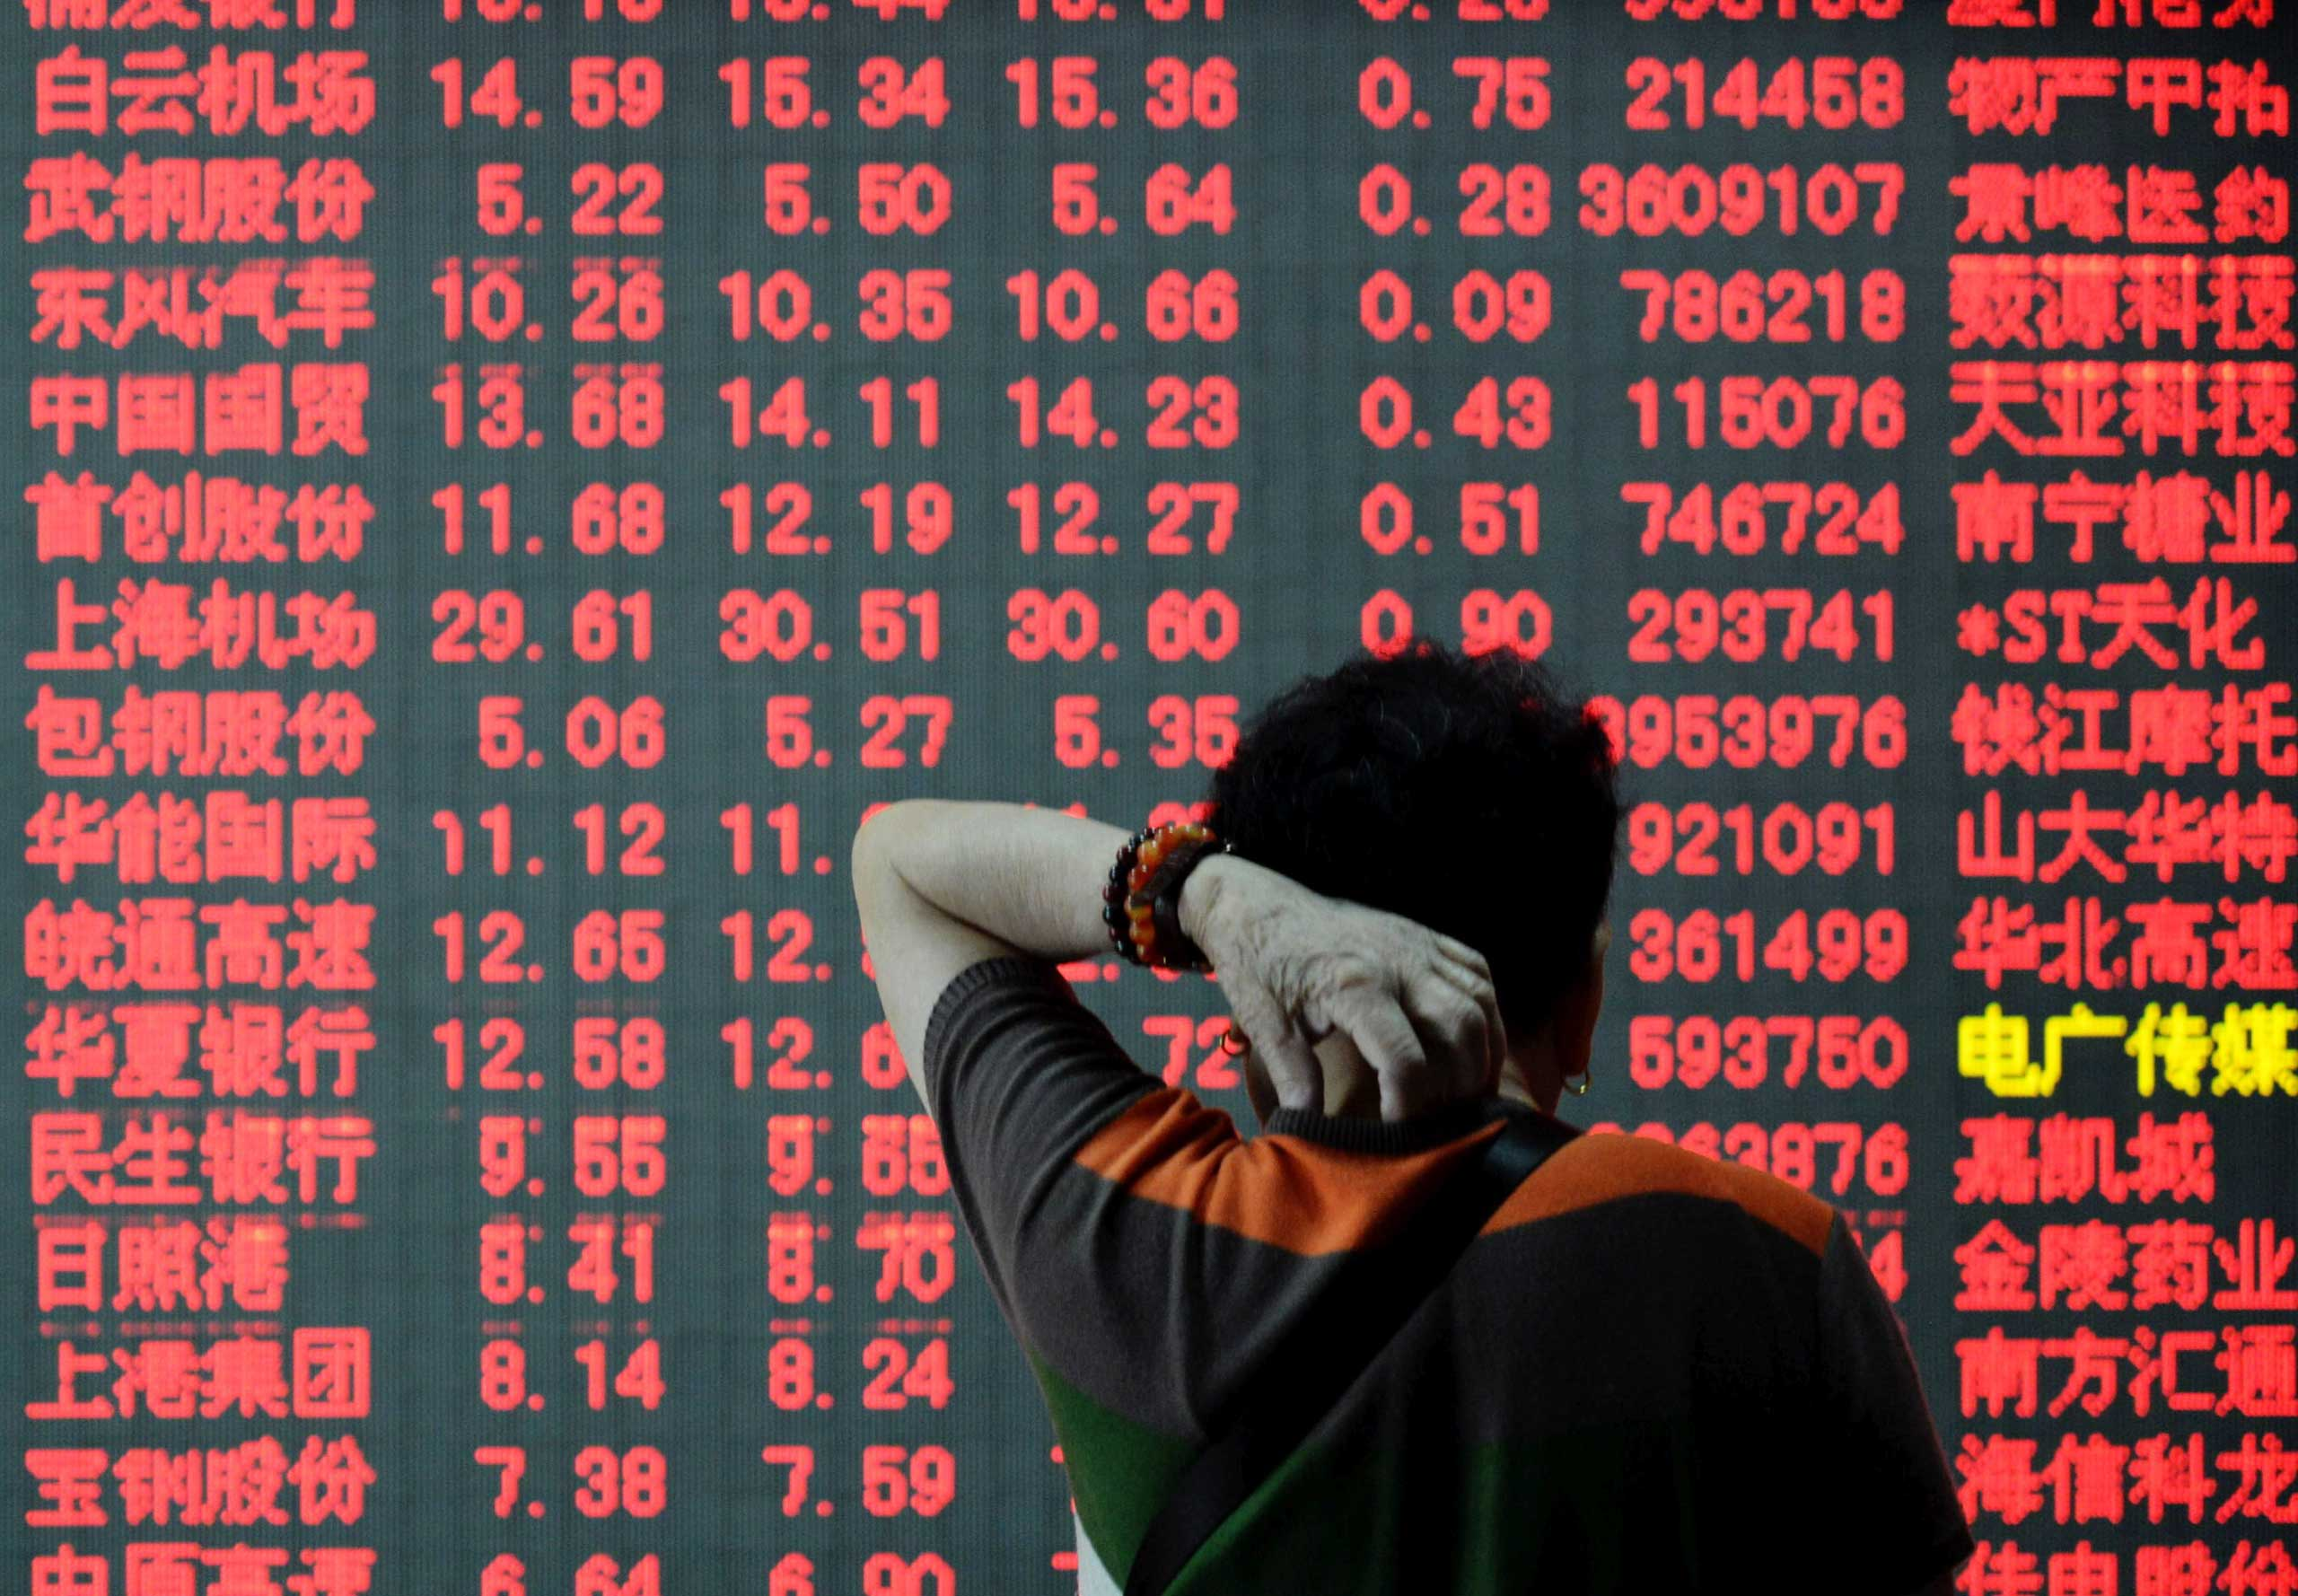 A Chinese investor looks at prices of shares  at a stock brokerage house in Hangzhou city, China on July 23, 2015.